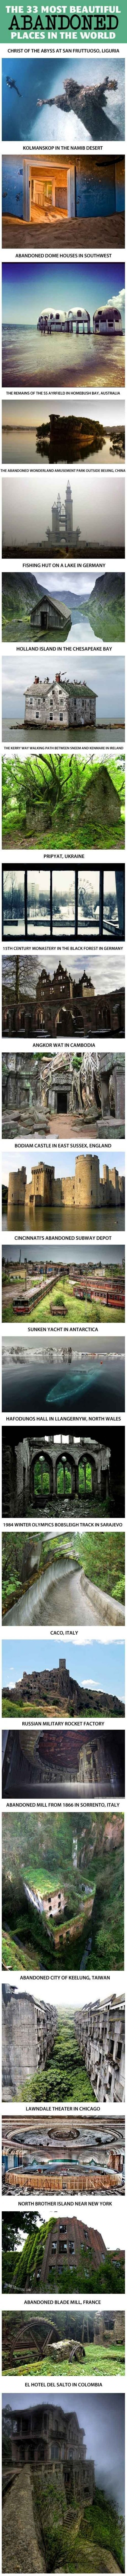 33 abandoned places